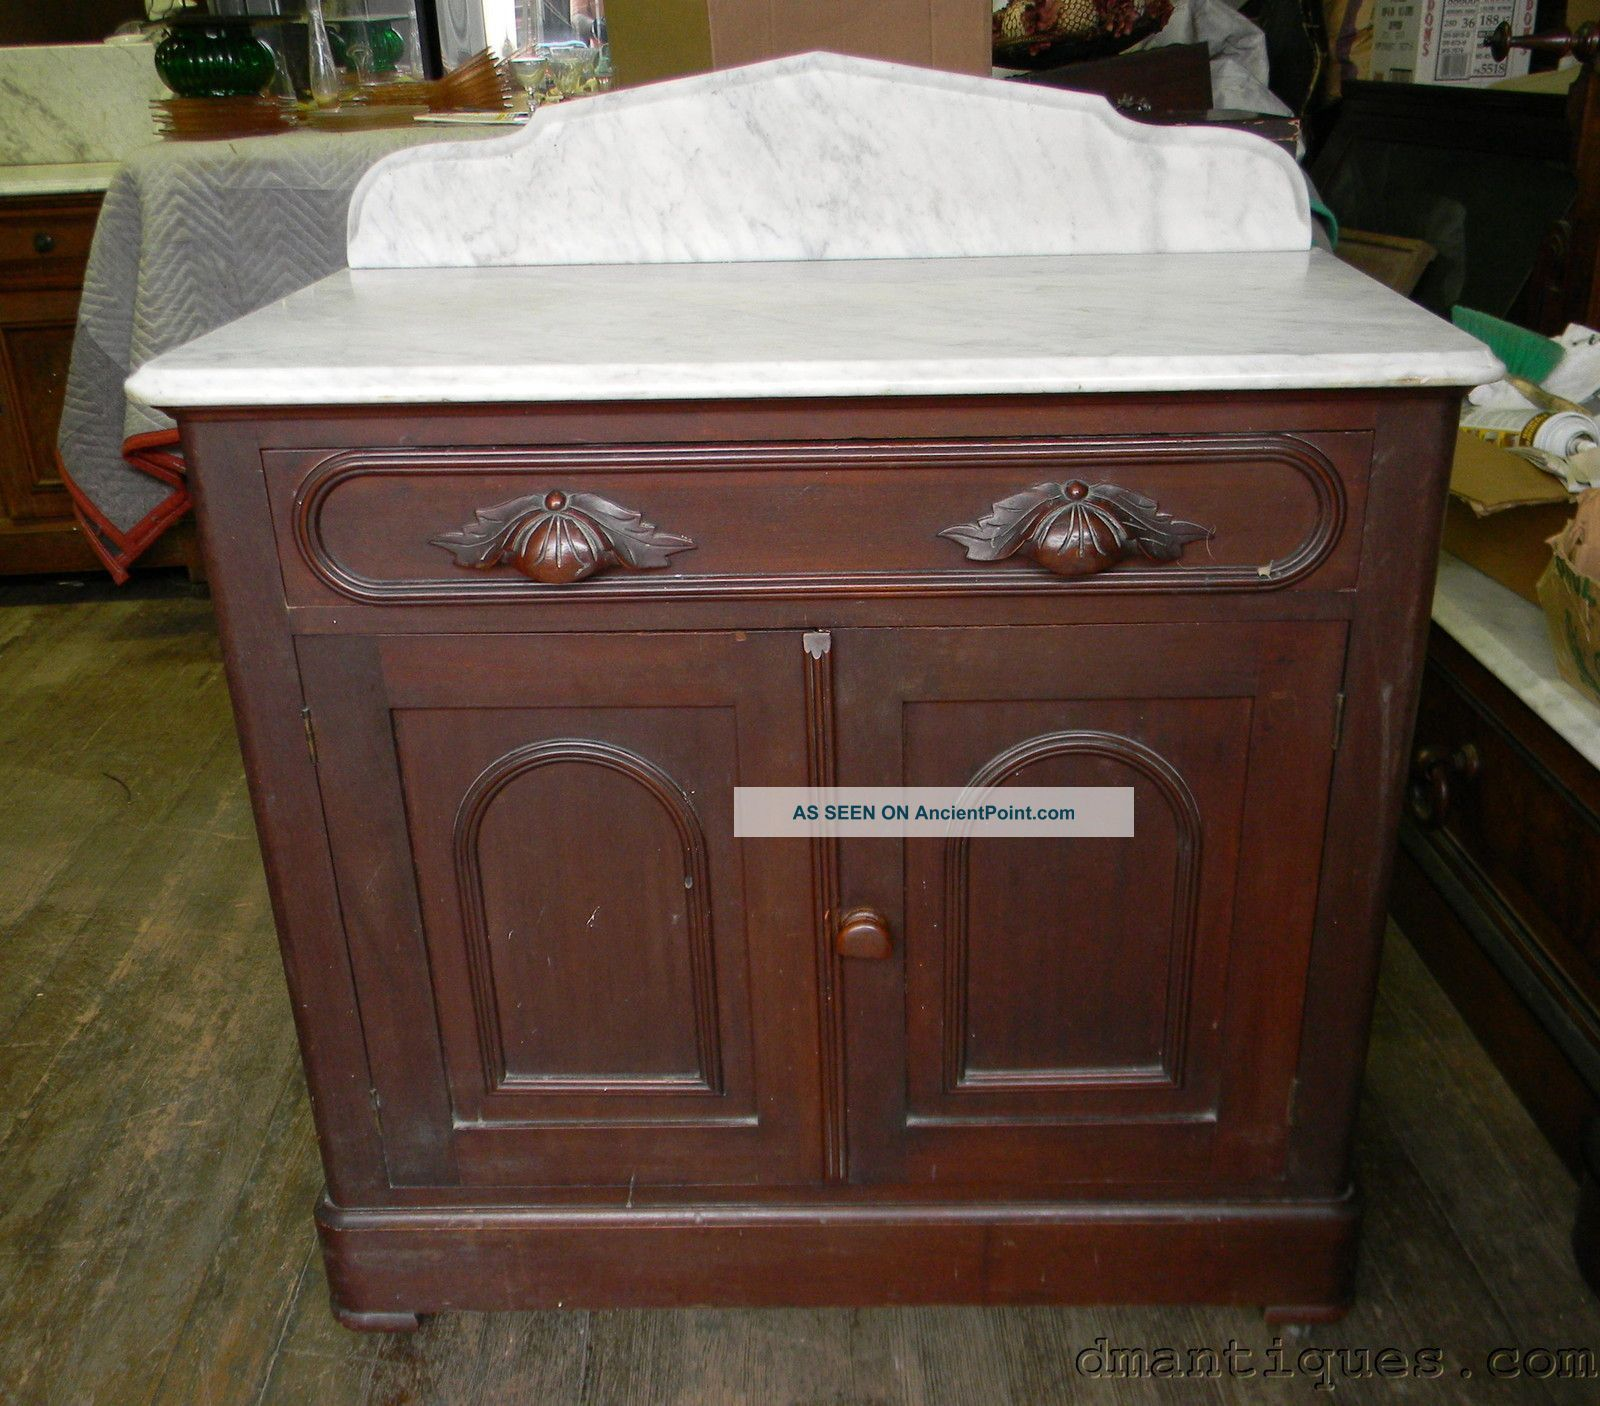 Antique Victorian Walnut Marble Top Bathroom Commode Wash Stand Storage Cabinet 1800-1899 photo